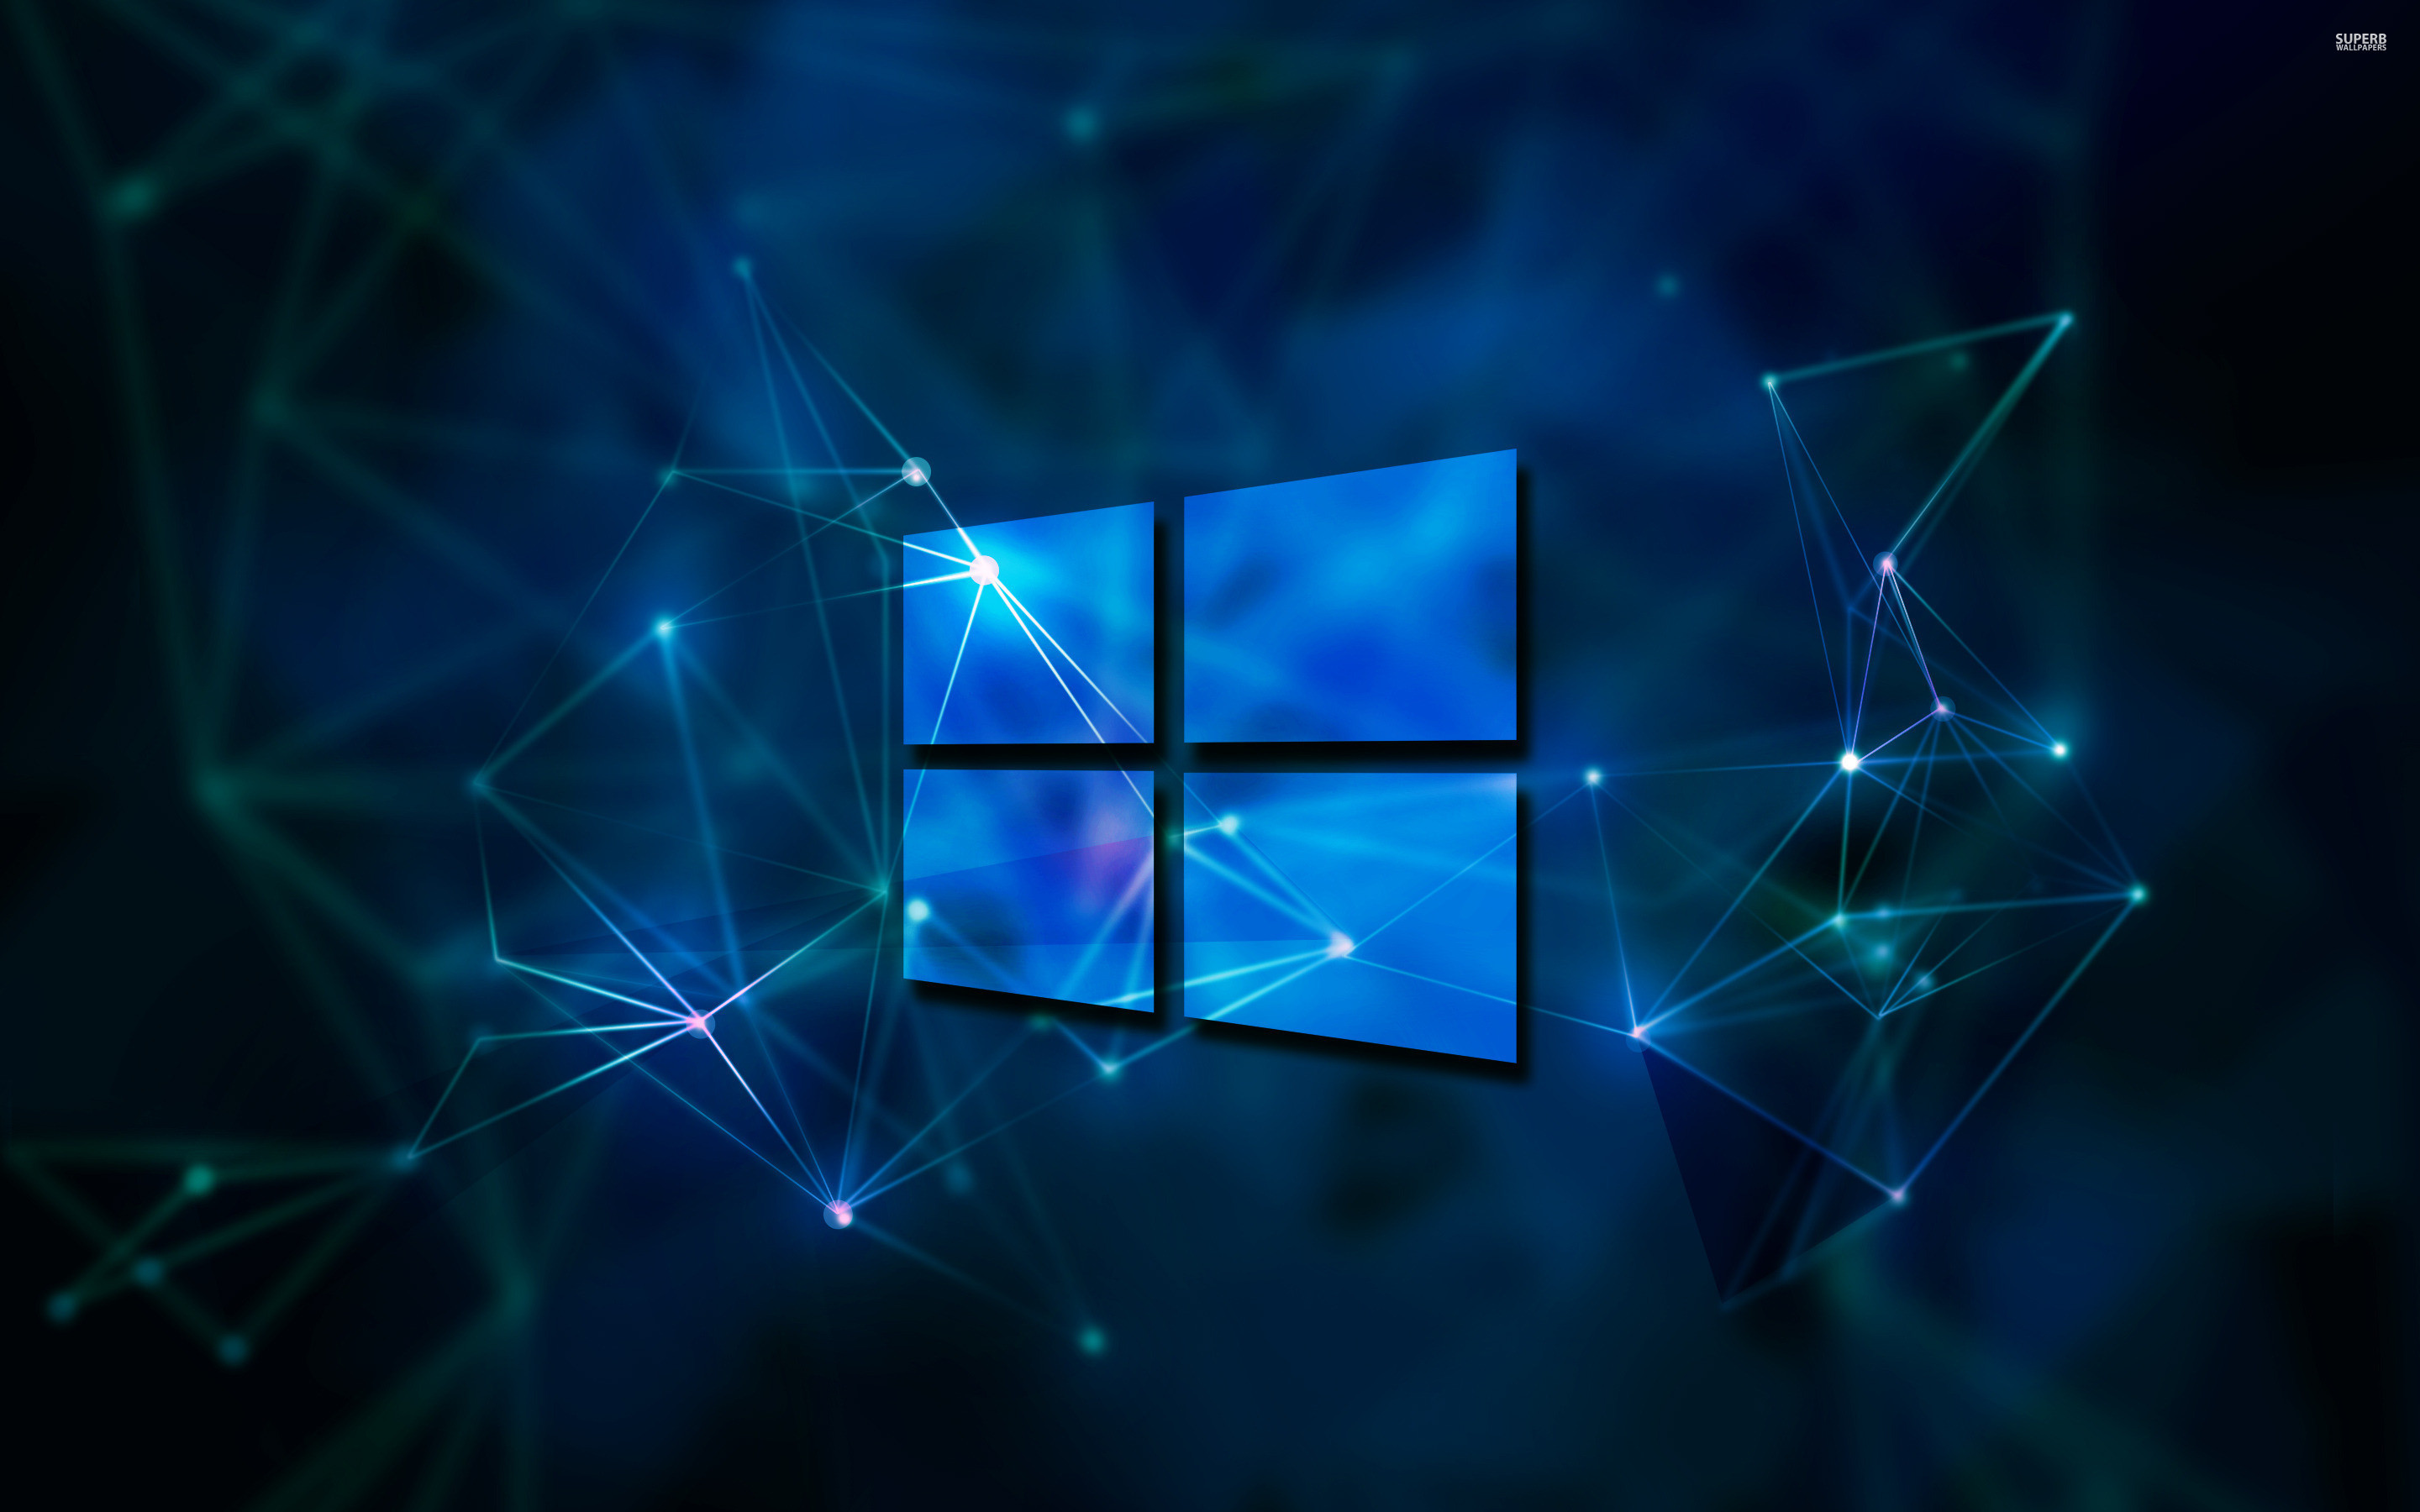 windows 10 live wallpapers hd 55 images